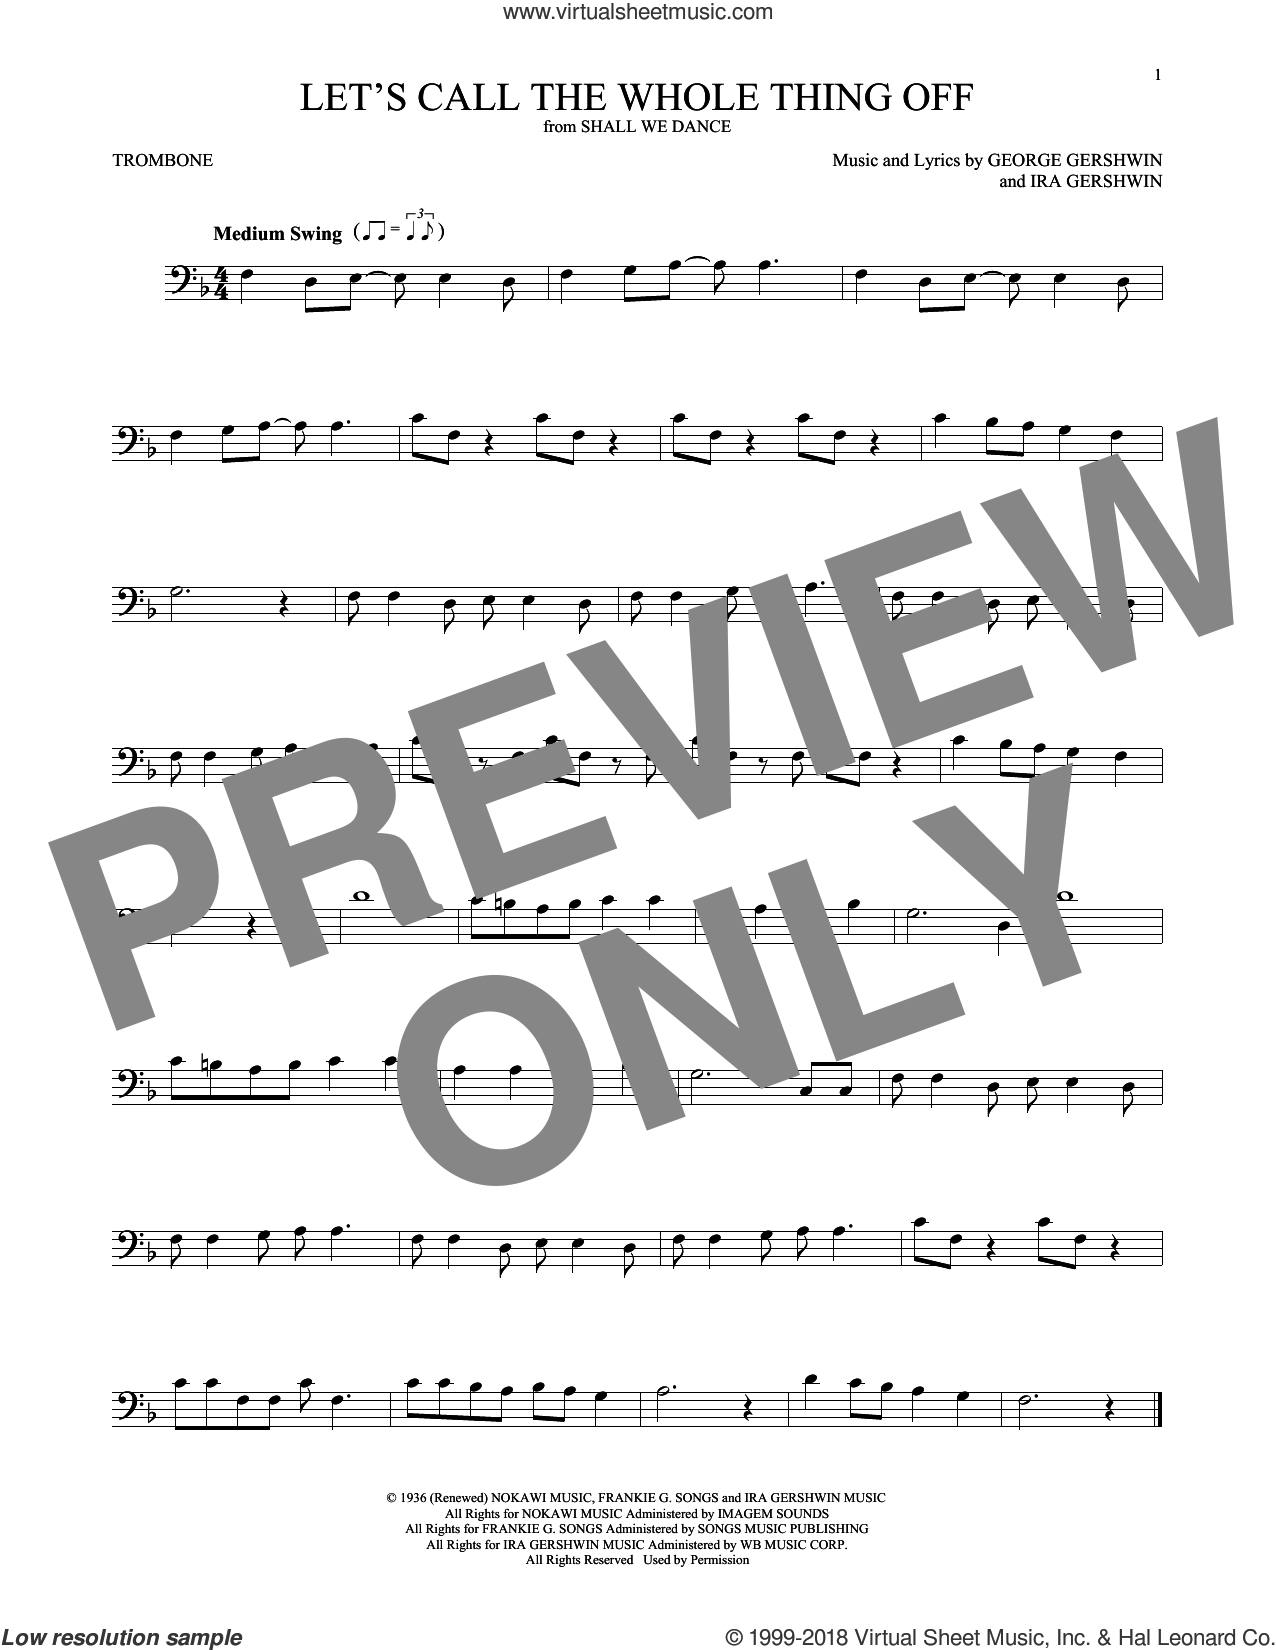 Let's Call The Whole Thing Off sheet music for trombone solo by George Gershwin and Ira Gershwin, intermediate skill level